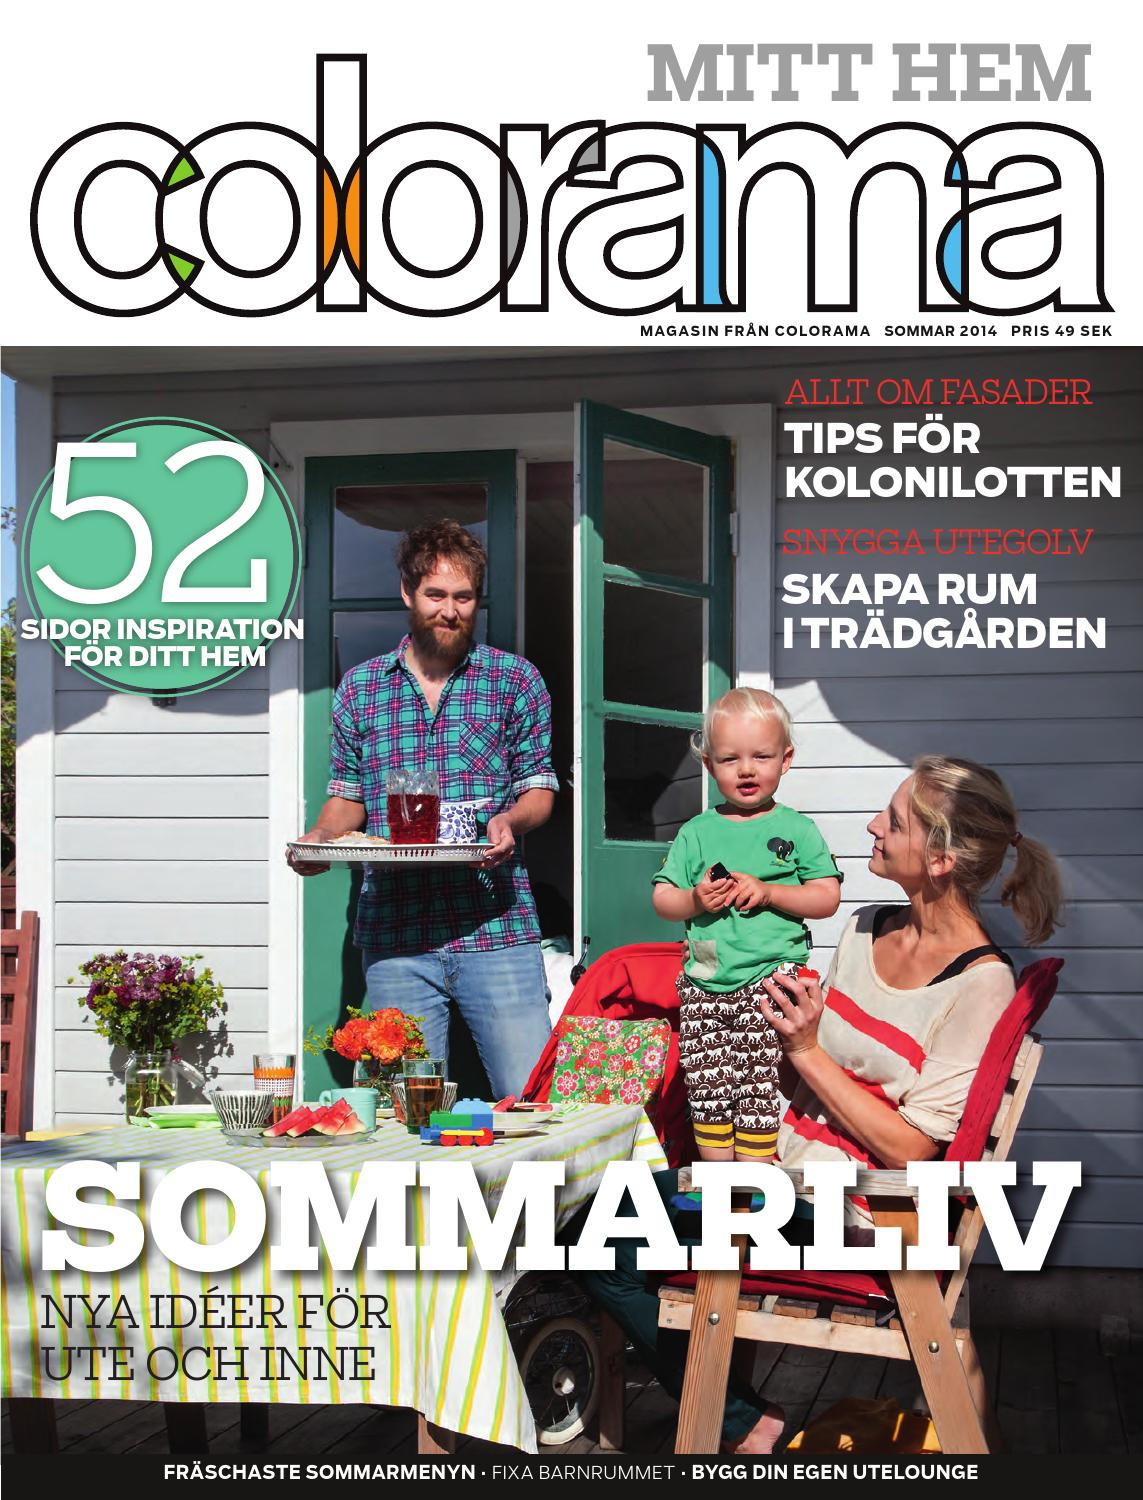 Colorama mitt hem, 2014 2 sommar by colorama   issuu